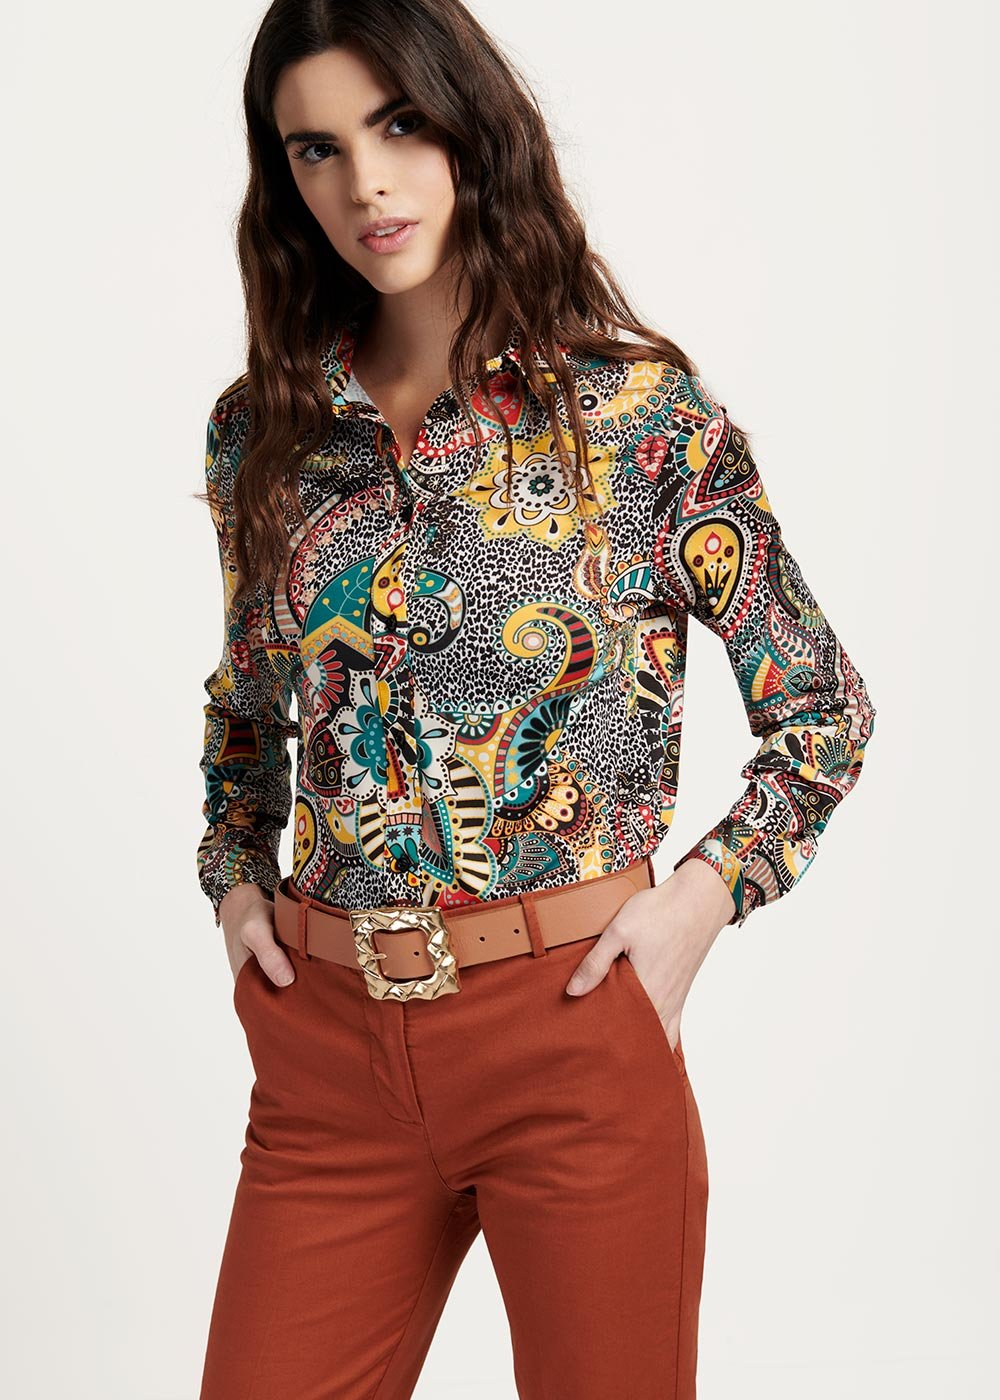 Cameron shirt with cashmere and spotted pattern - Black / Menta Fantasia - Woman